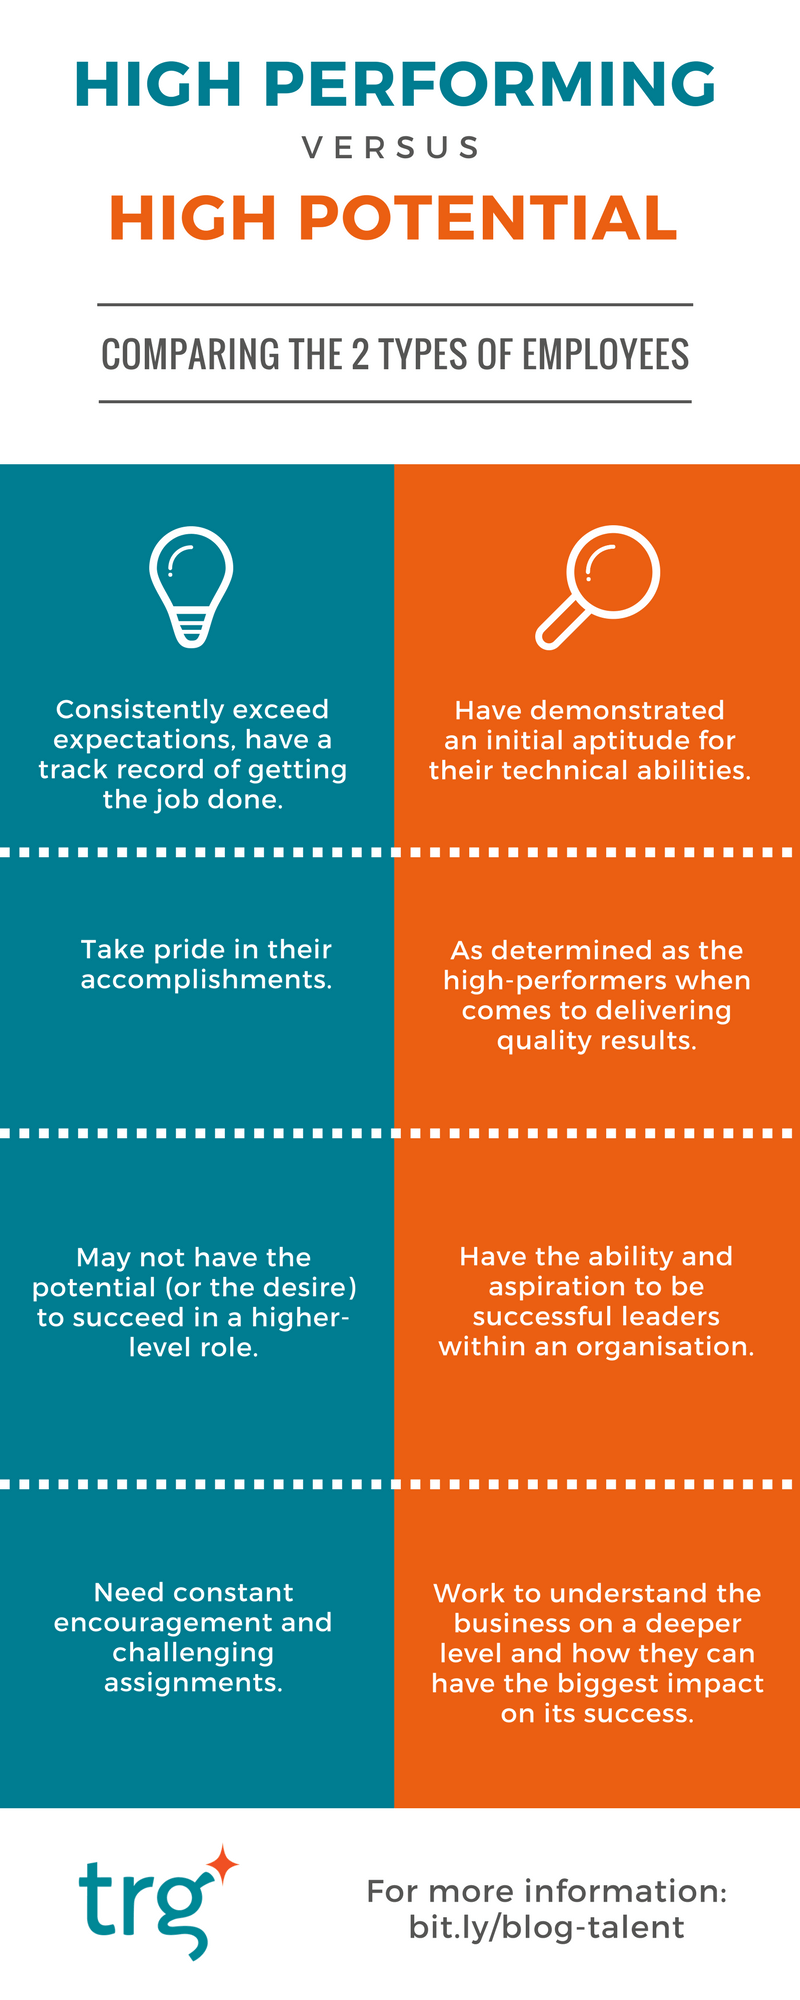 High performing vs. High potential employees